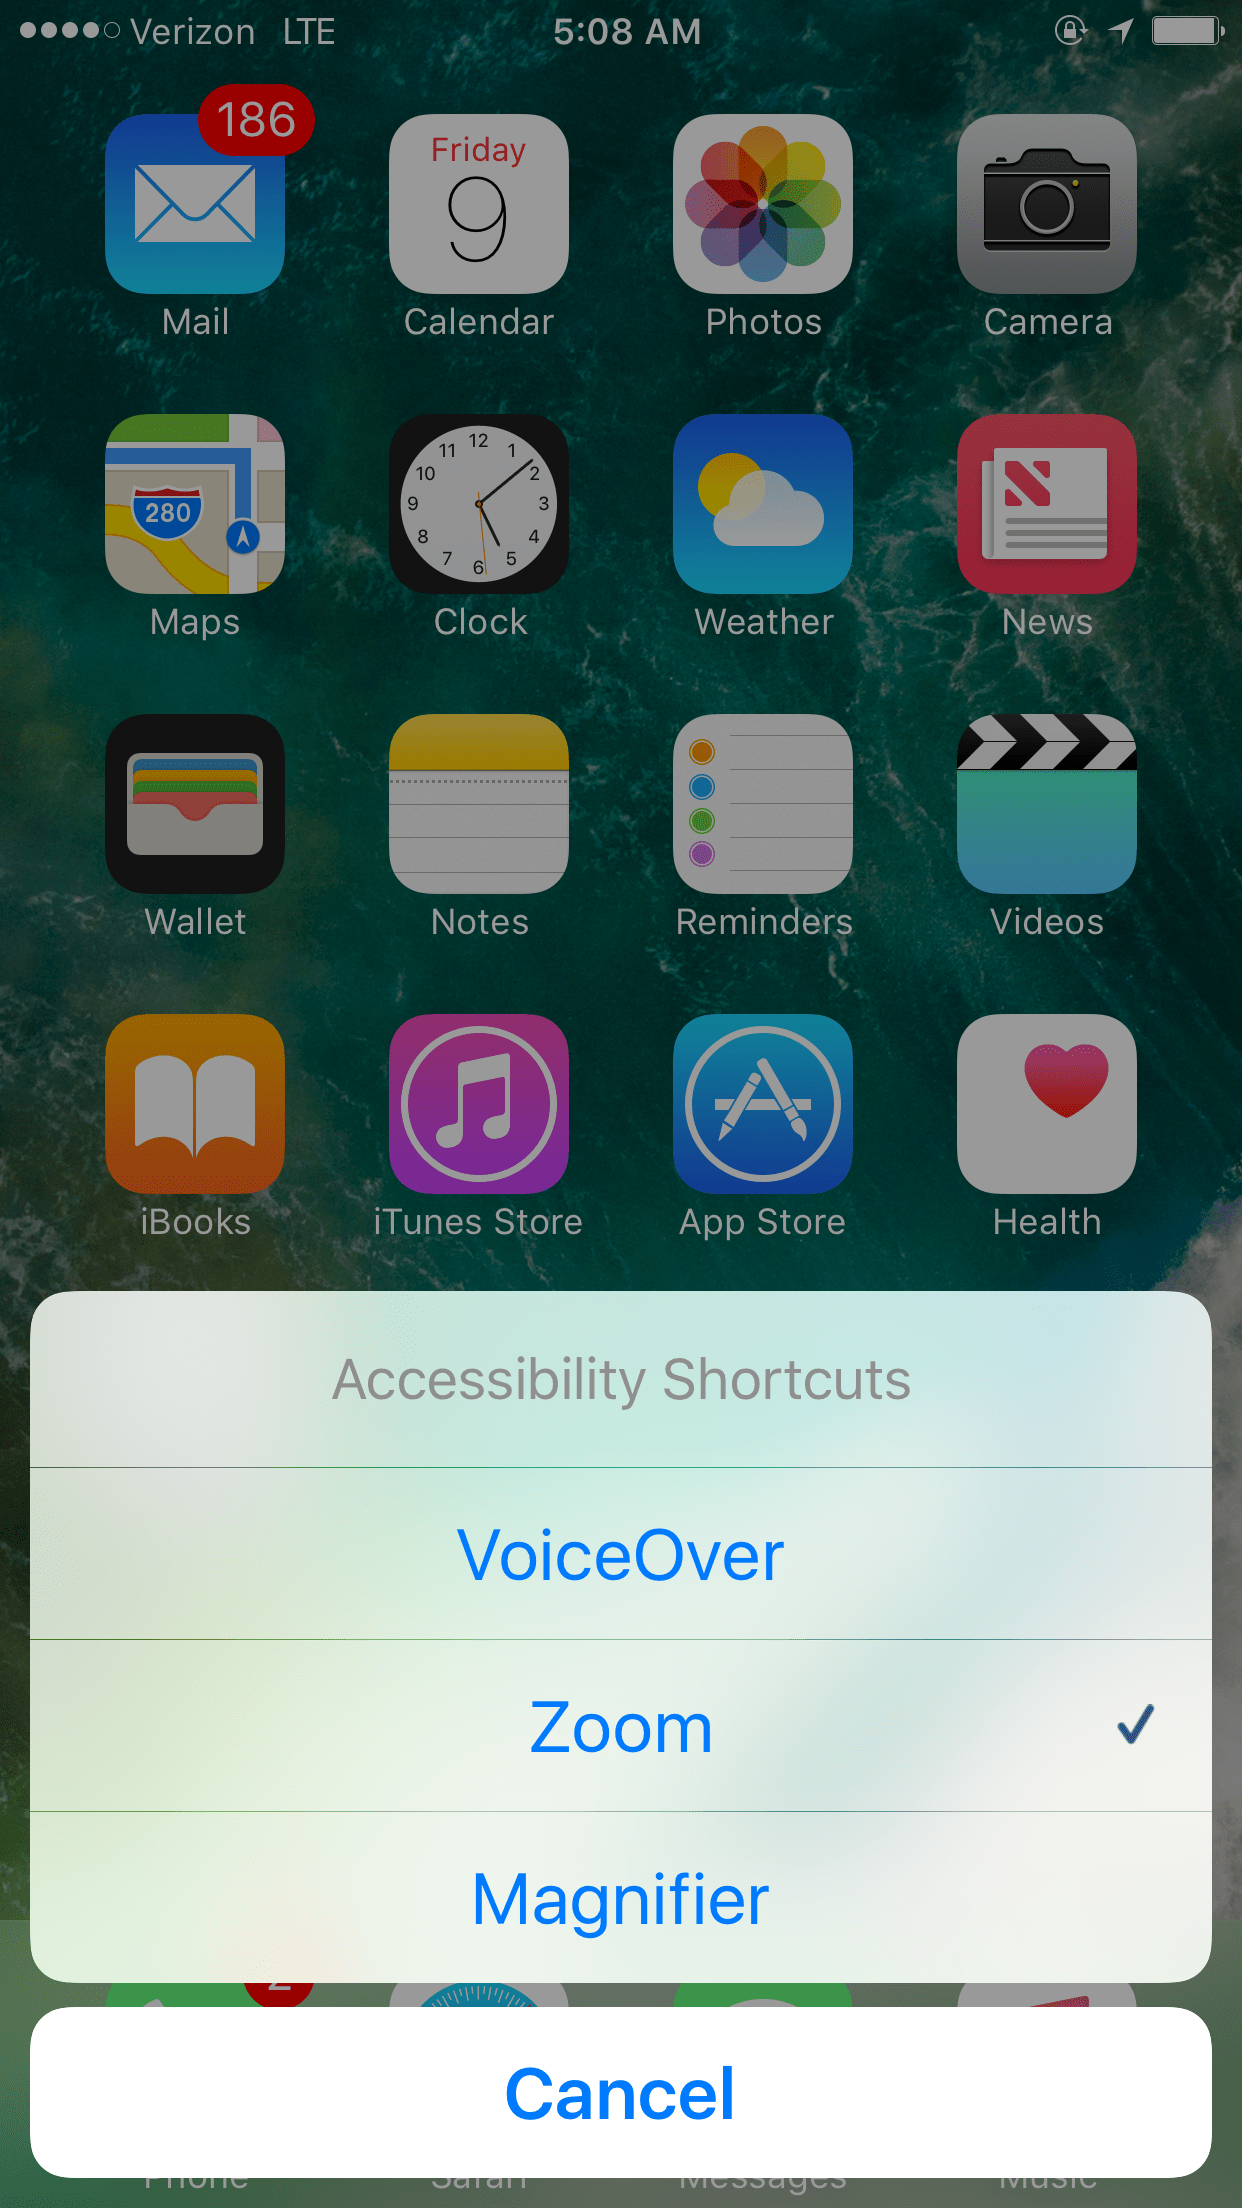 Image showing magnifier in accessibility shortcut menu.